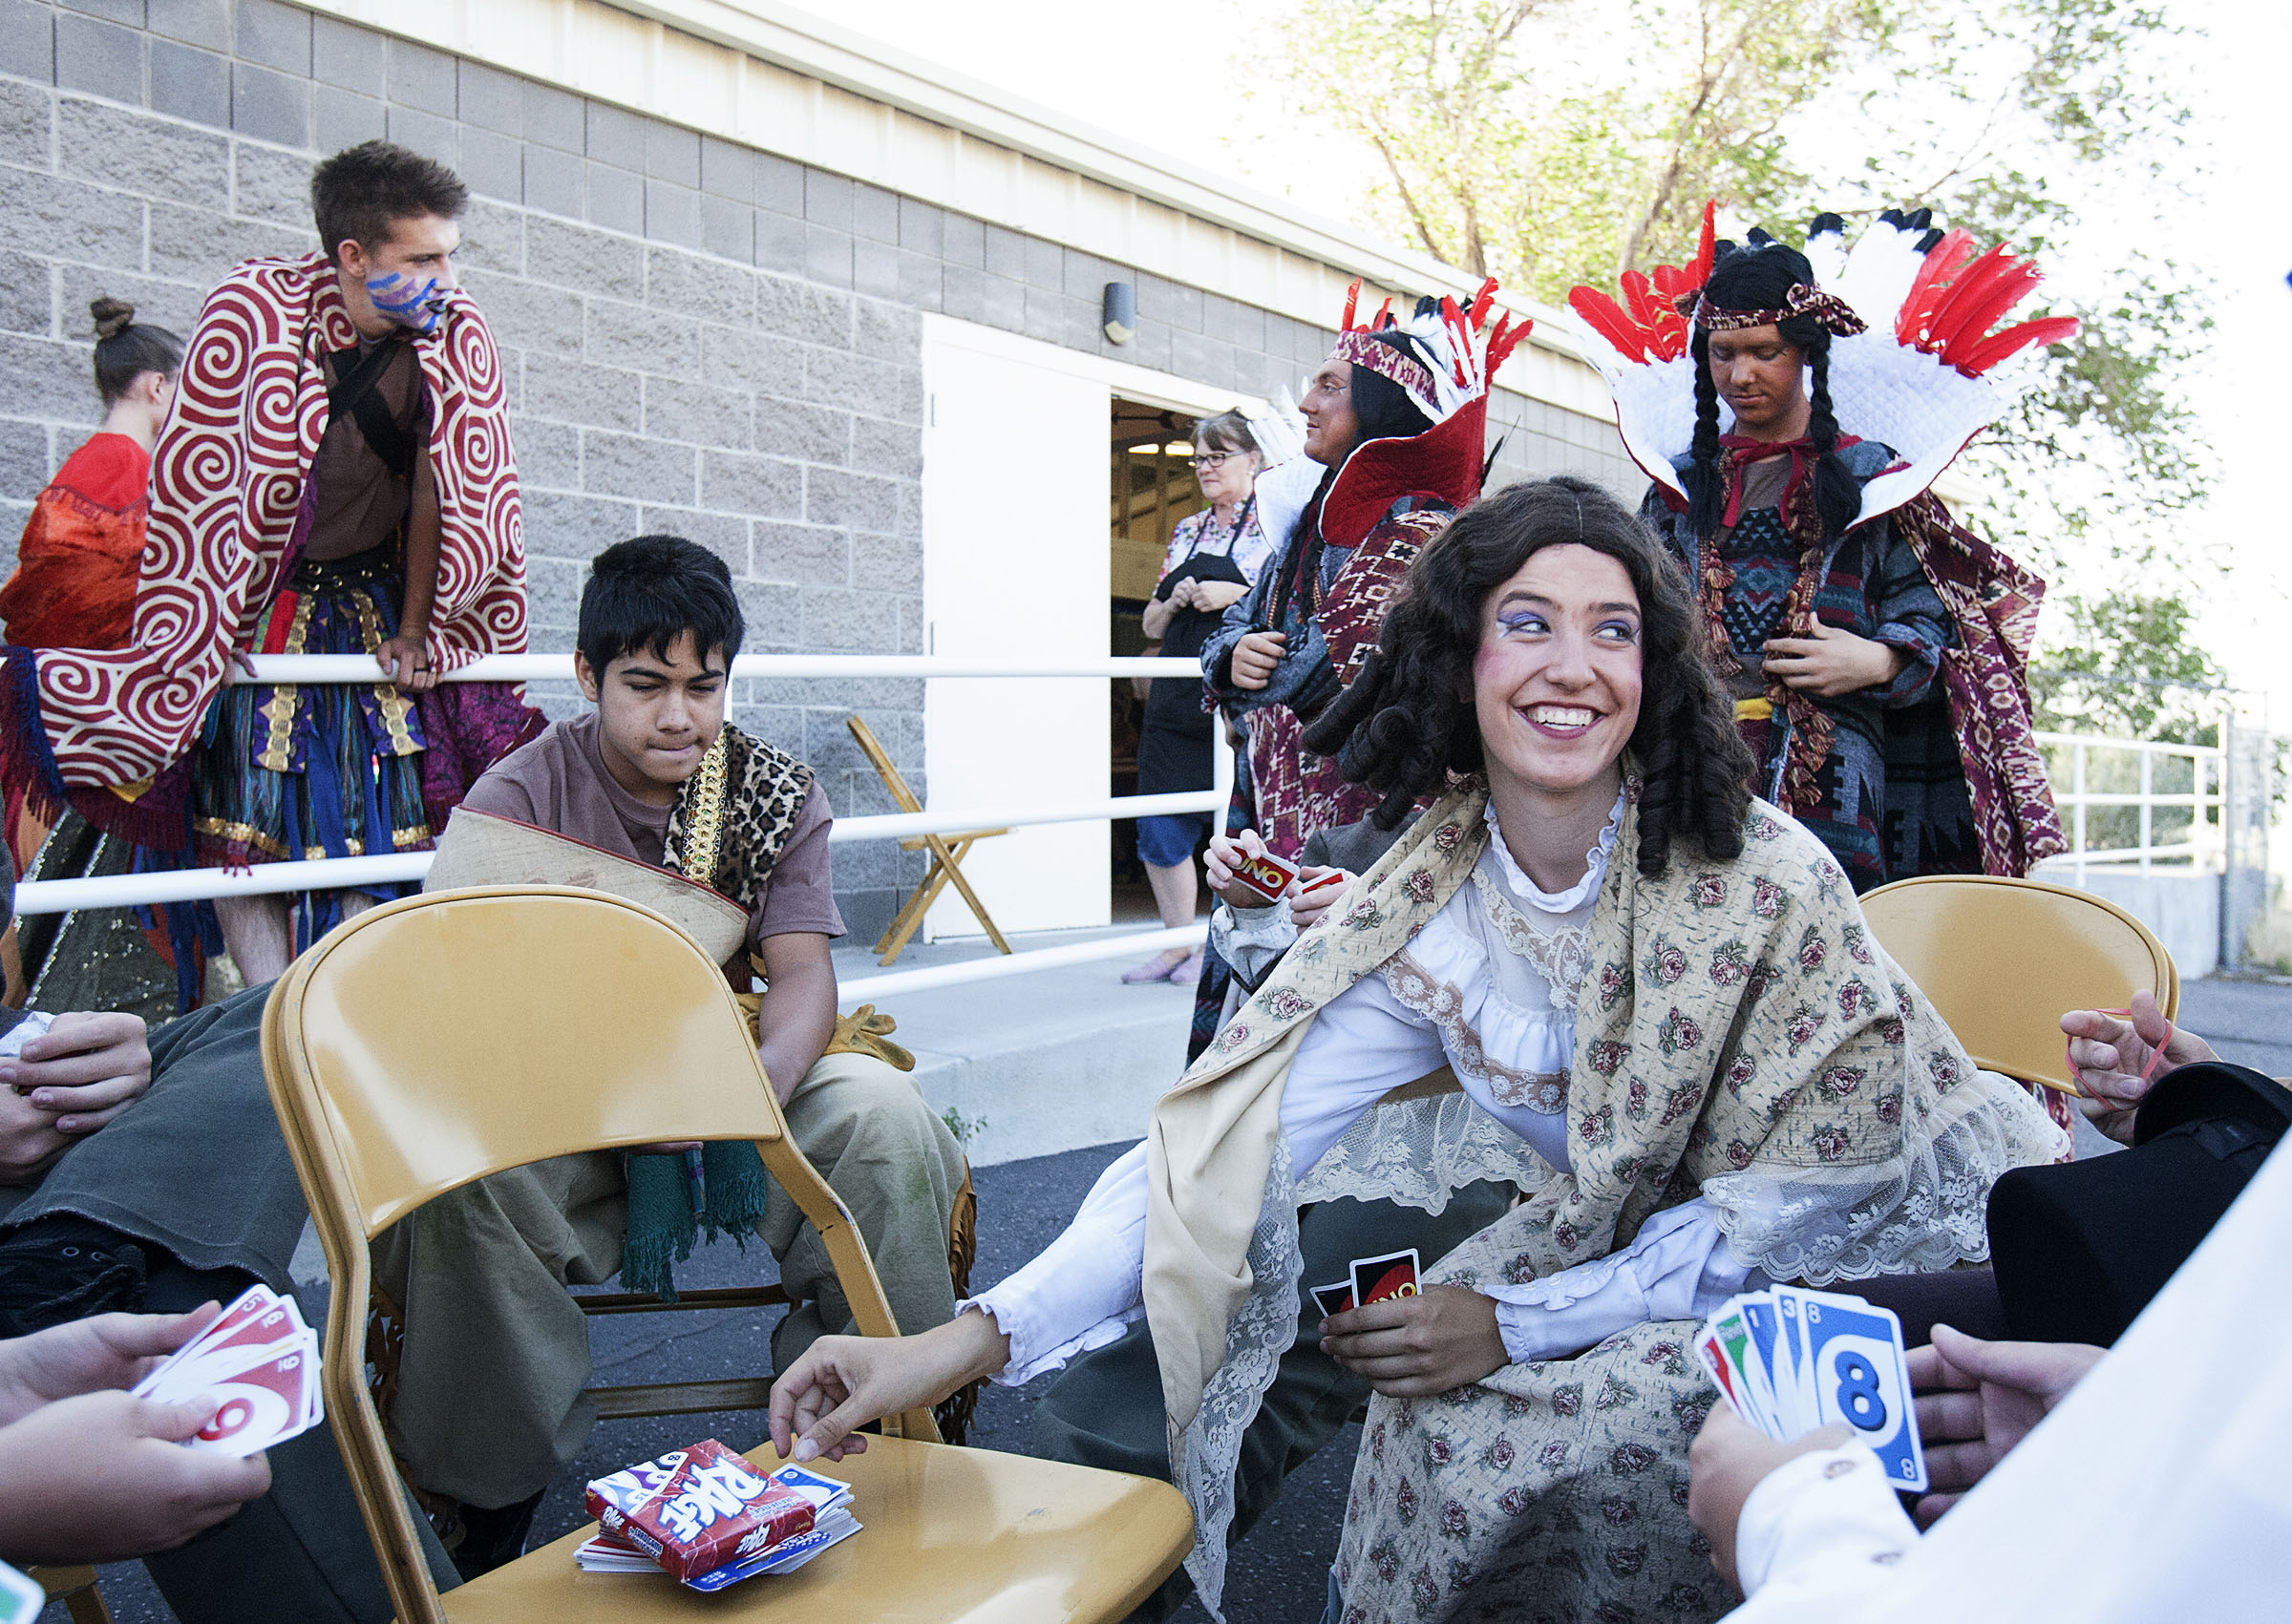 Samantha Olson, who portrays Mary Henshaw in the Mormon Miracle Pageant in Manti, smiles as she plays Uno with other actors before the show on Wednesday, June 15, 2016.